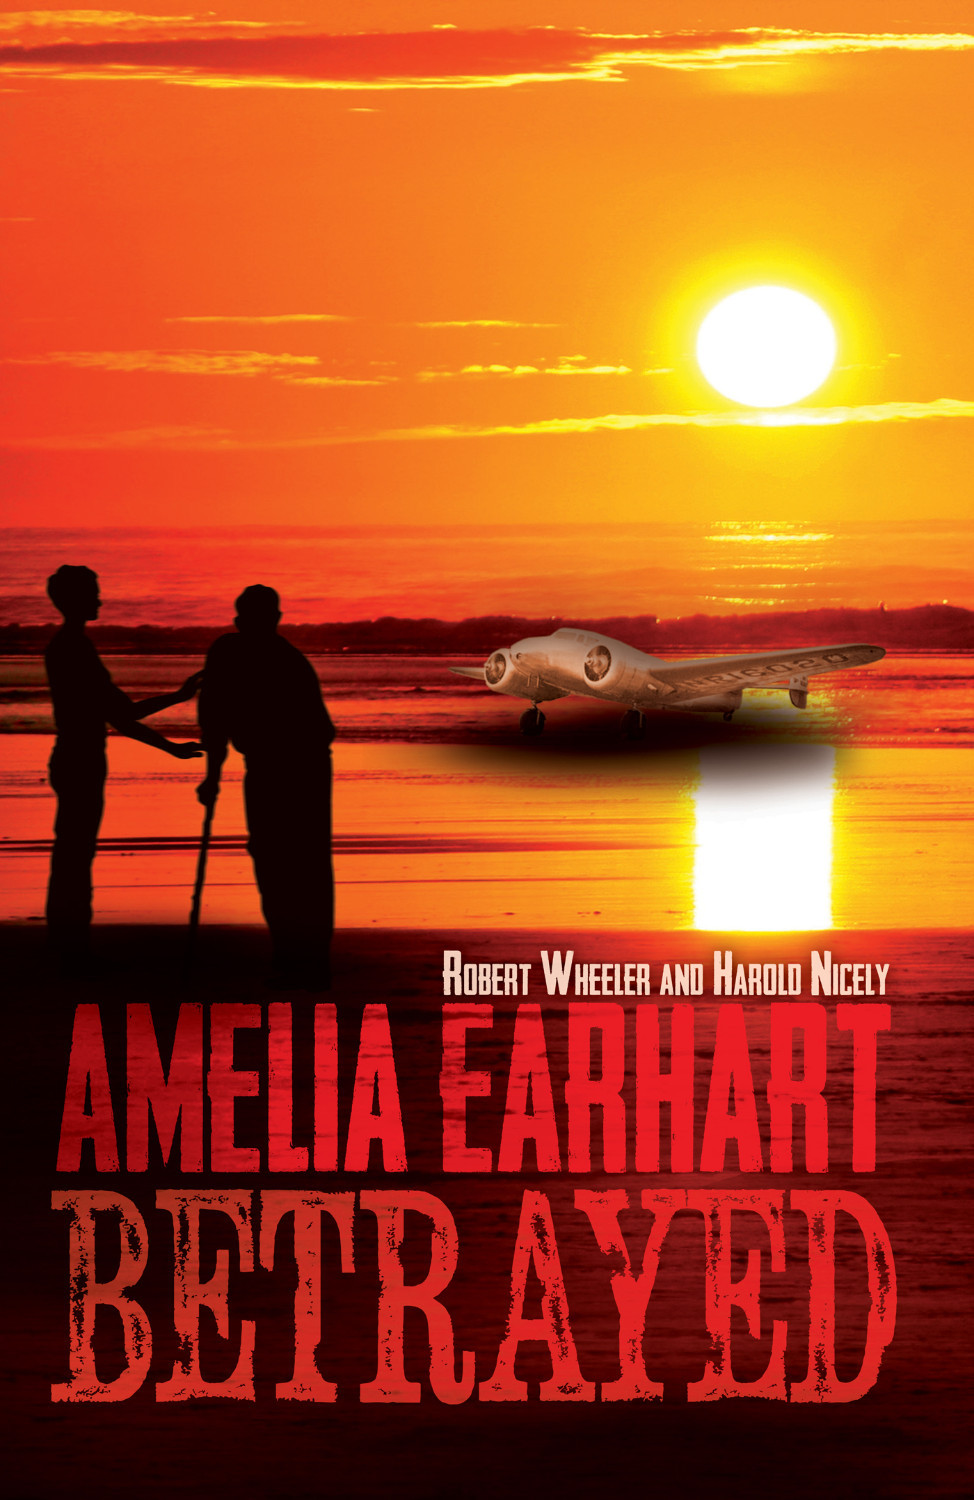 AmeliaEarhart_CoverSpread_final_REVISED_8612_528-67.jpg